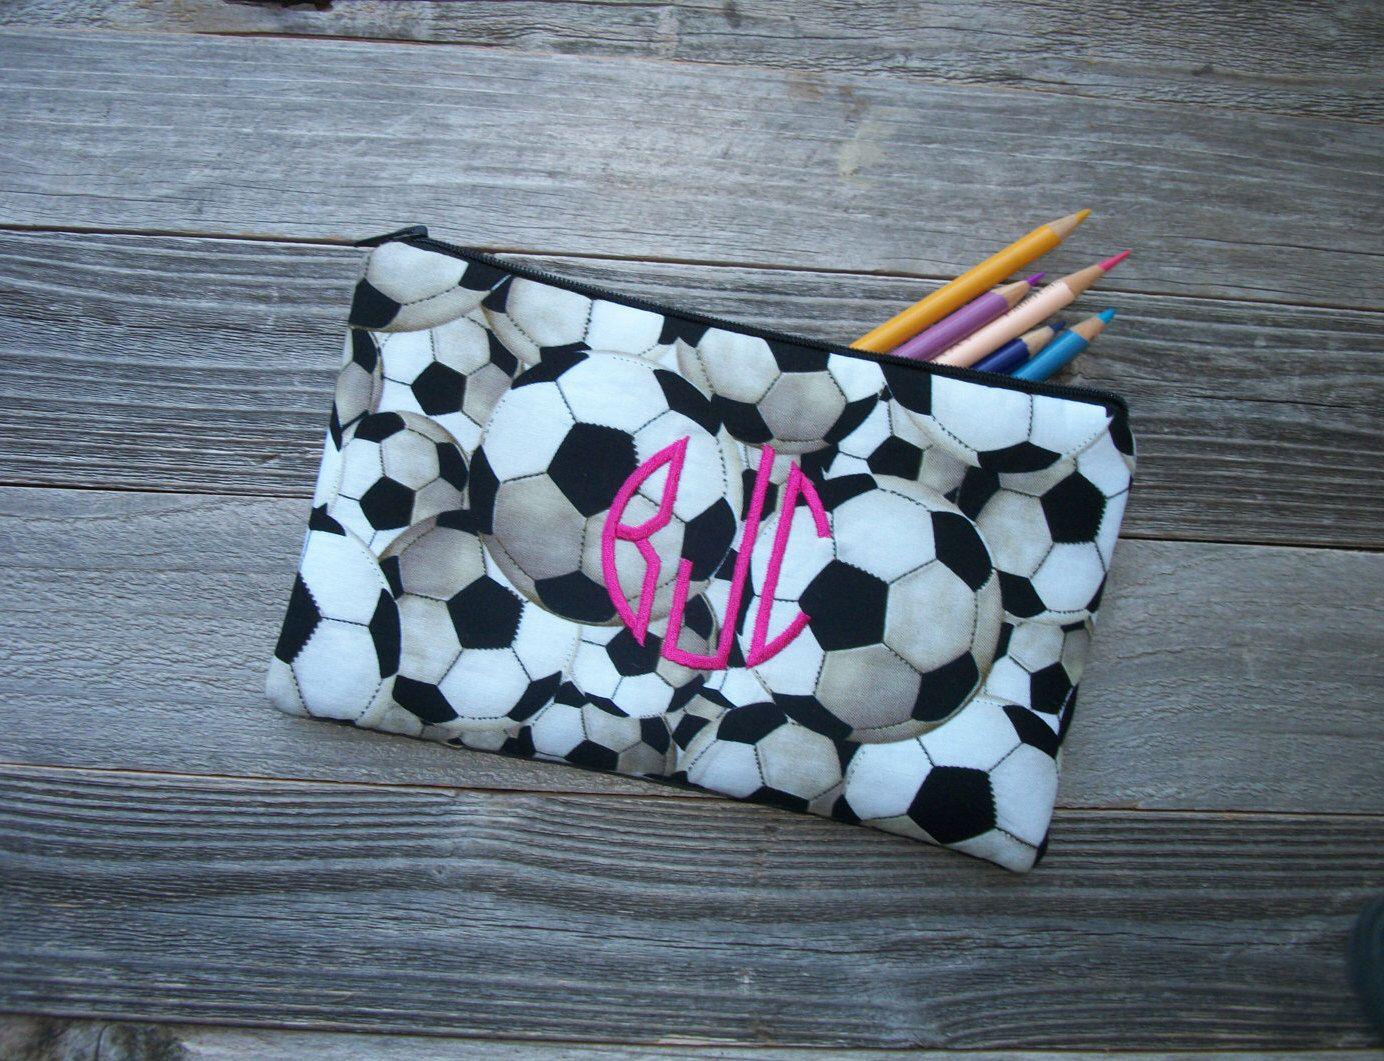 Monogrammed Soccer Make-up Bag/Pencil Case, Cotton, Padded, 5 x 9 inch (Embroidered) ***Choose your monogram color! by SewSweetParadise on Etsy https://www.etsy.com/listing/479787774/monogrammed-soccer-make-up-bagpencil